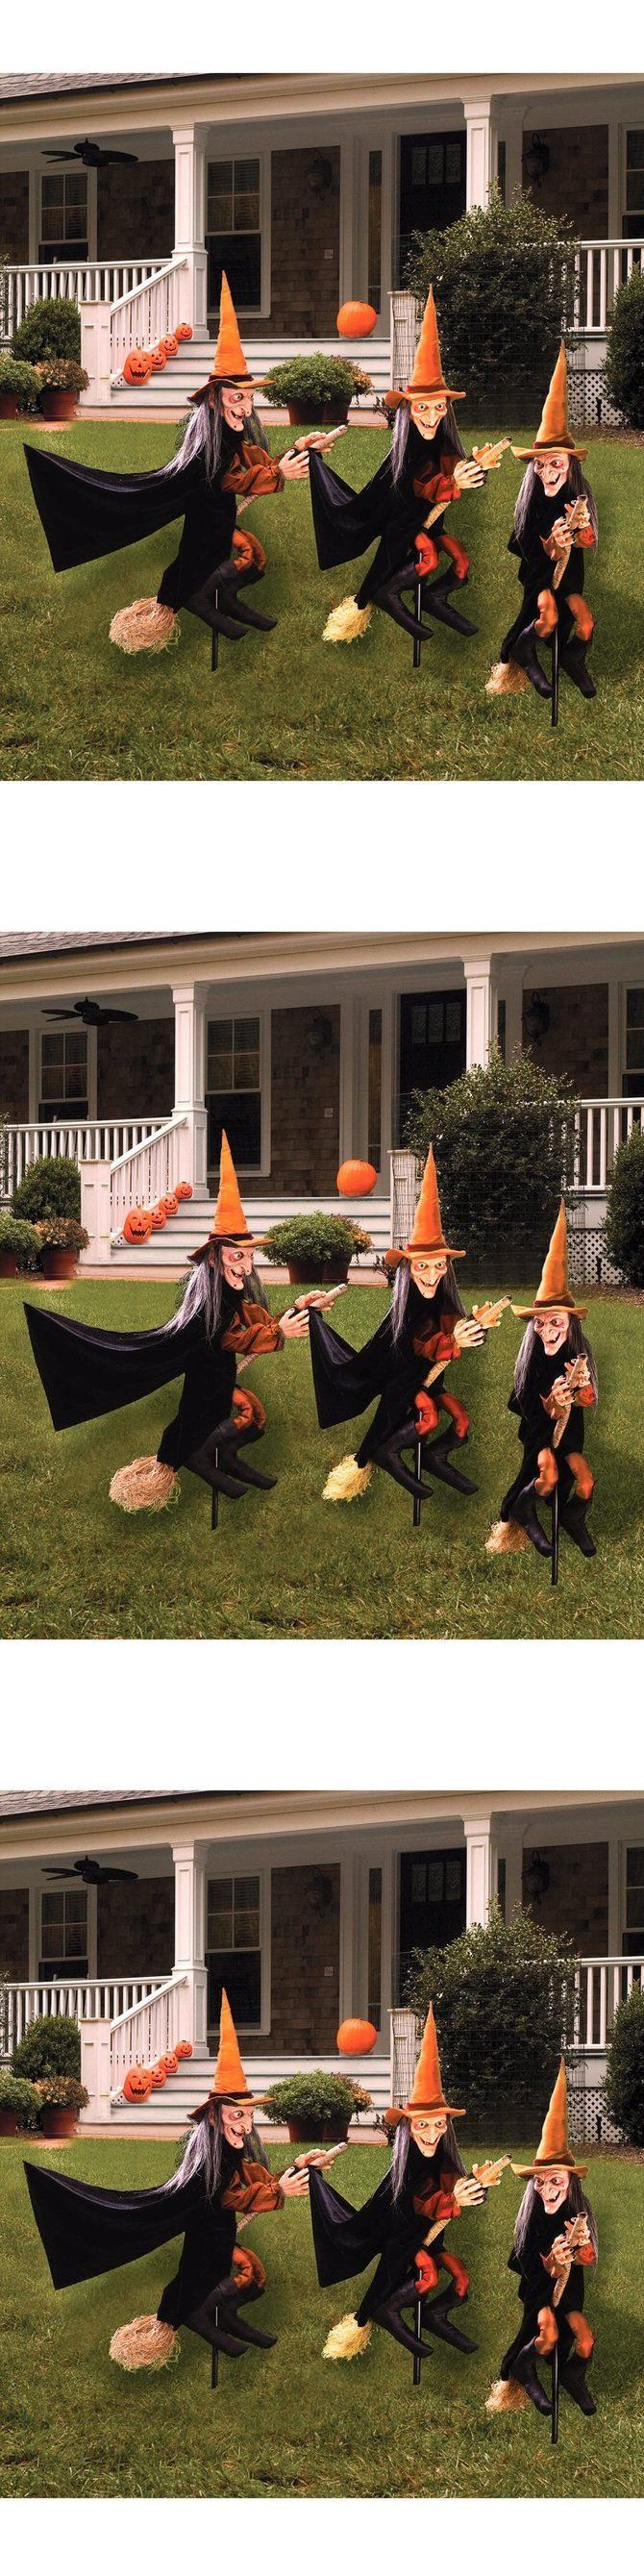 Halloween 170094: Group Of Spooky Witch Halloween Lawn Props Outdoor Yard Decoration Scary New -> BUY IT NOW ONLY: $67.92 on eBay!